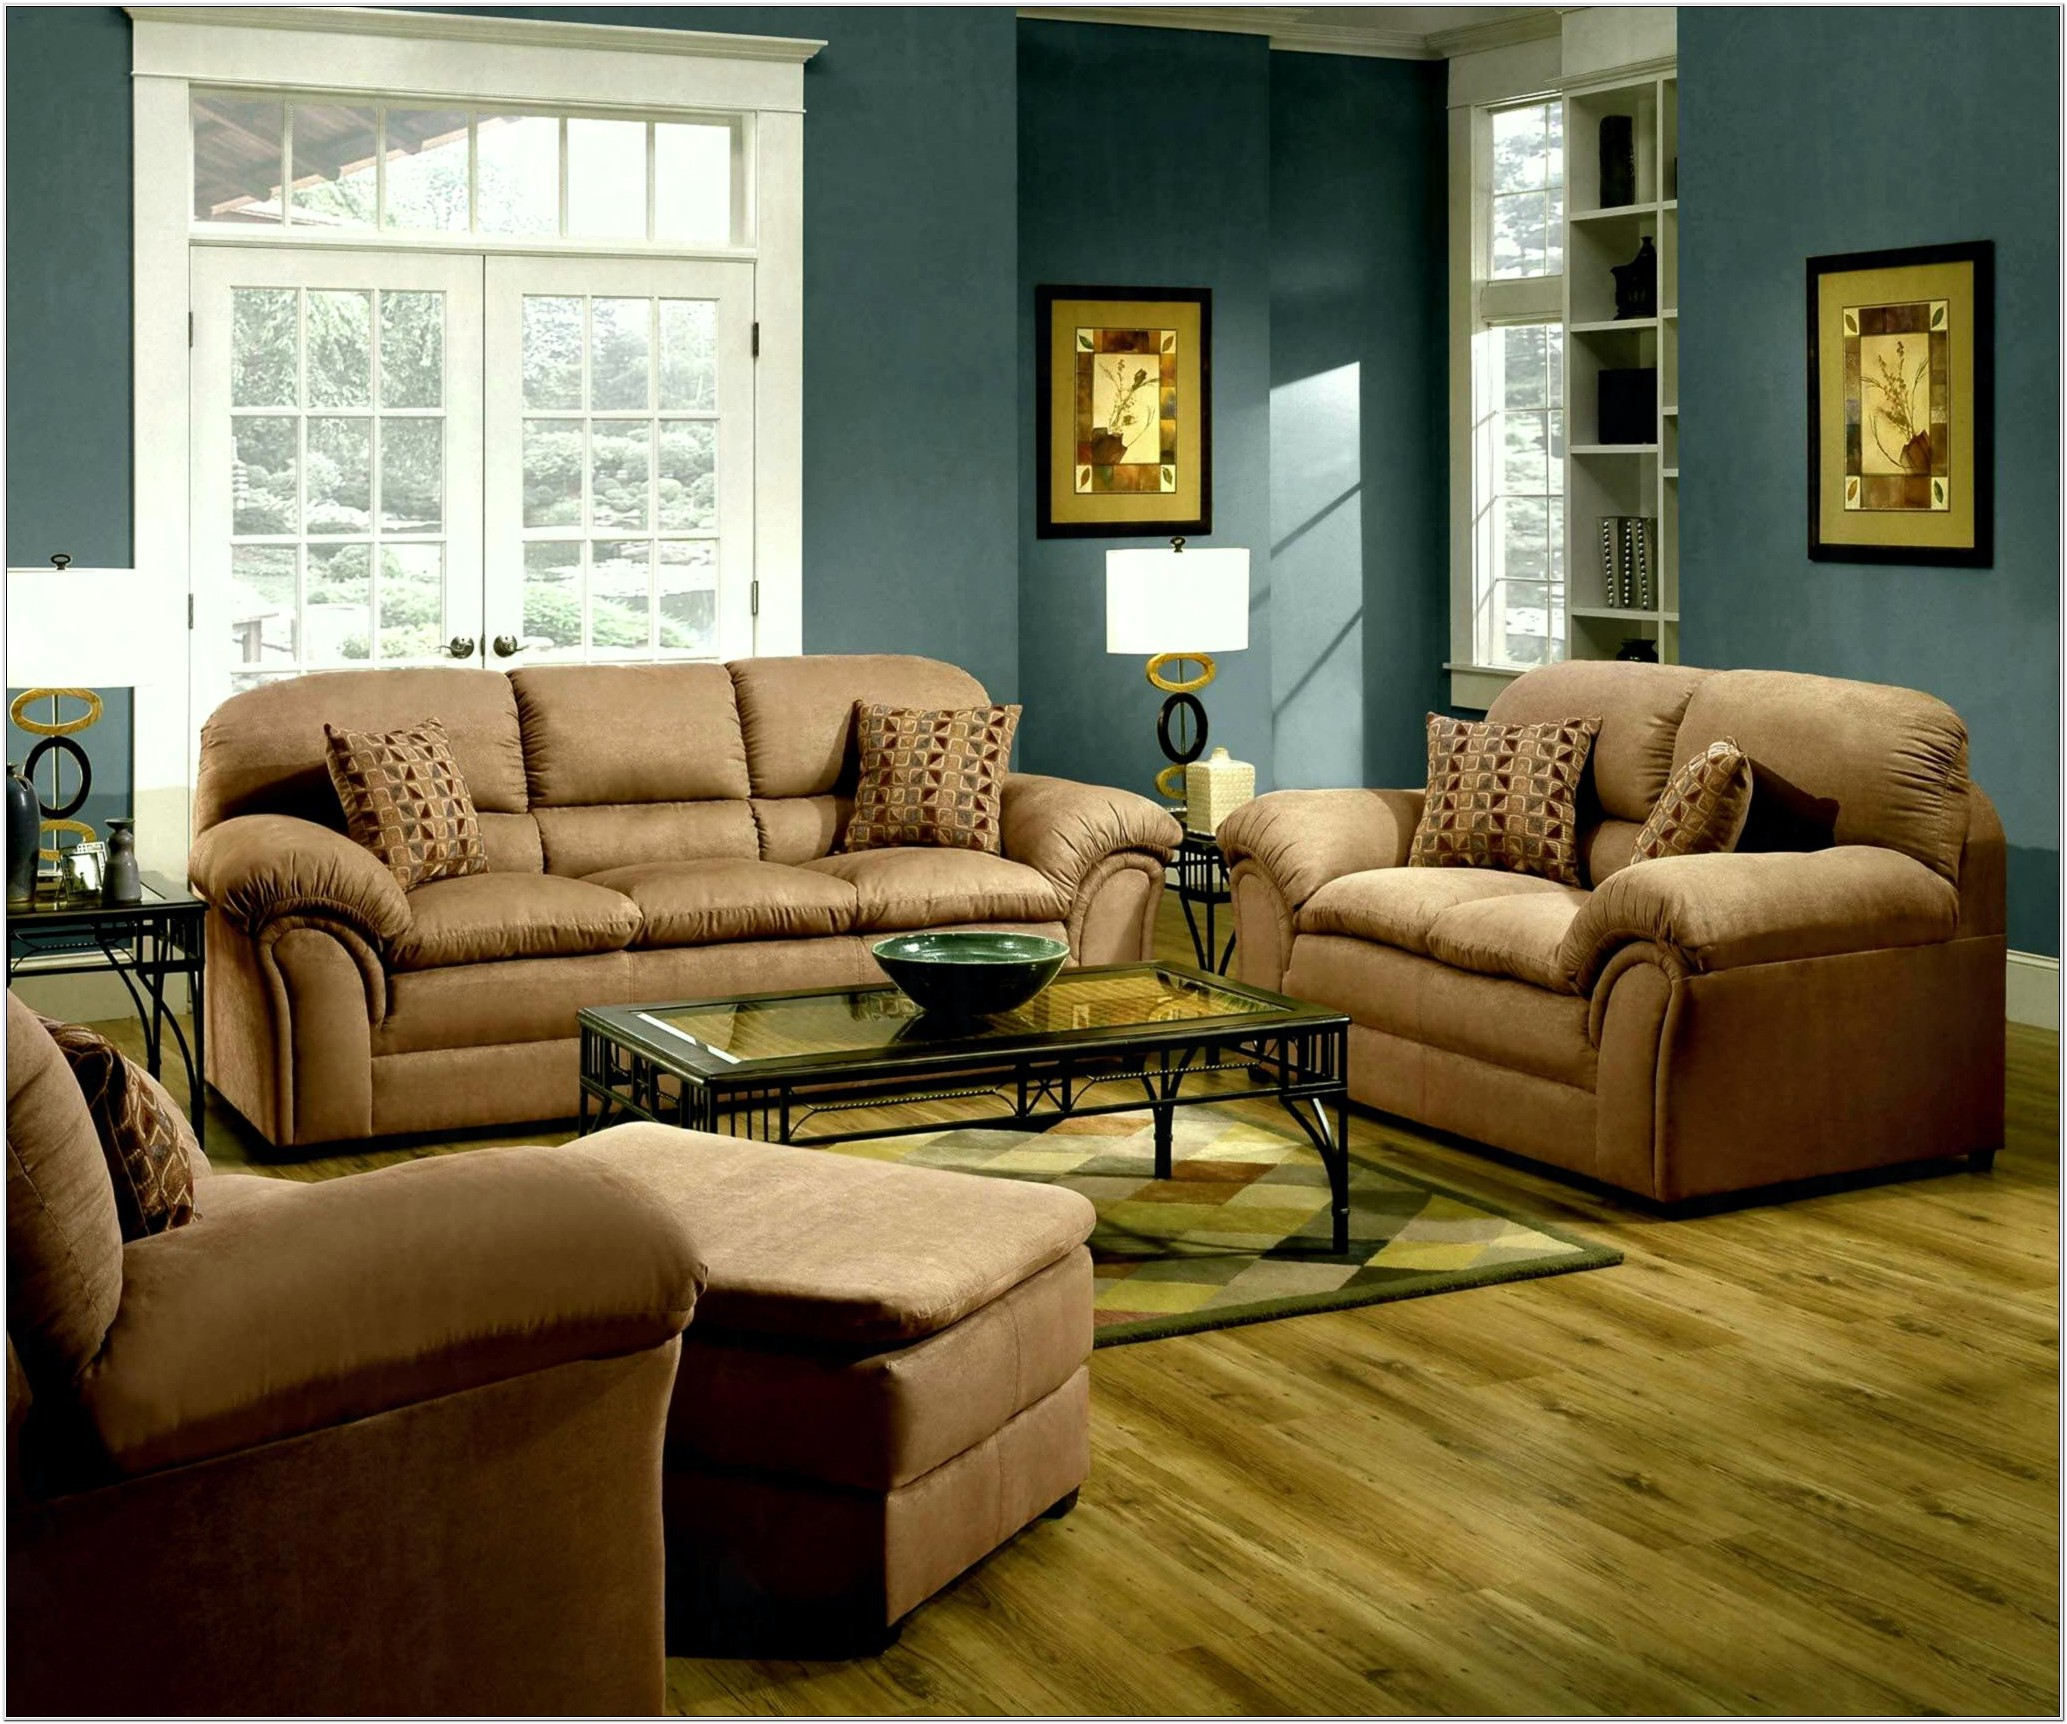 Decorating Living Room With Brown Leather Furniture